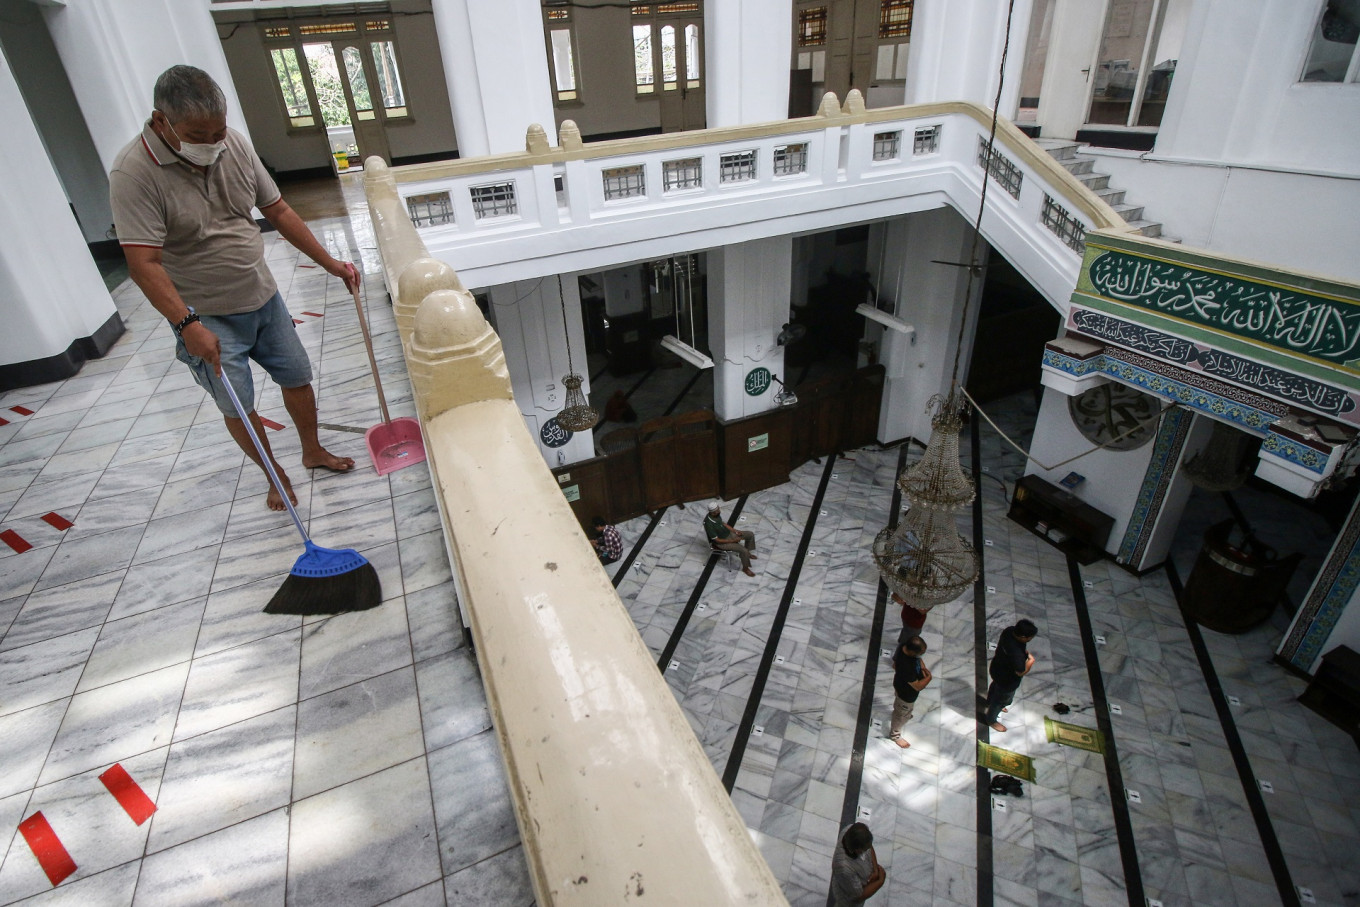 Jakarta Muslims enjoy relaxed rules in second Ramadan during pandemic